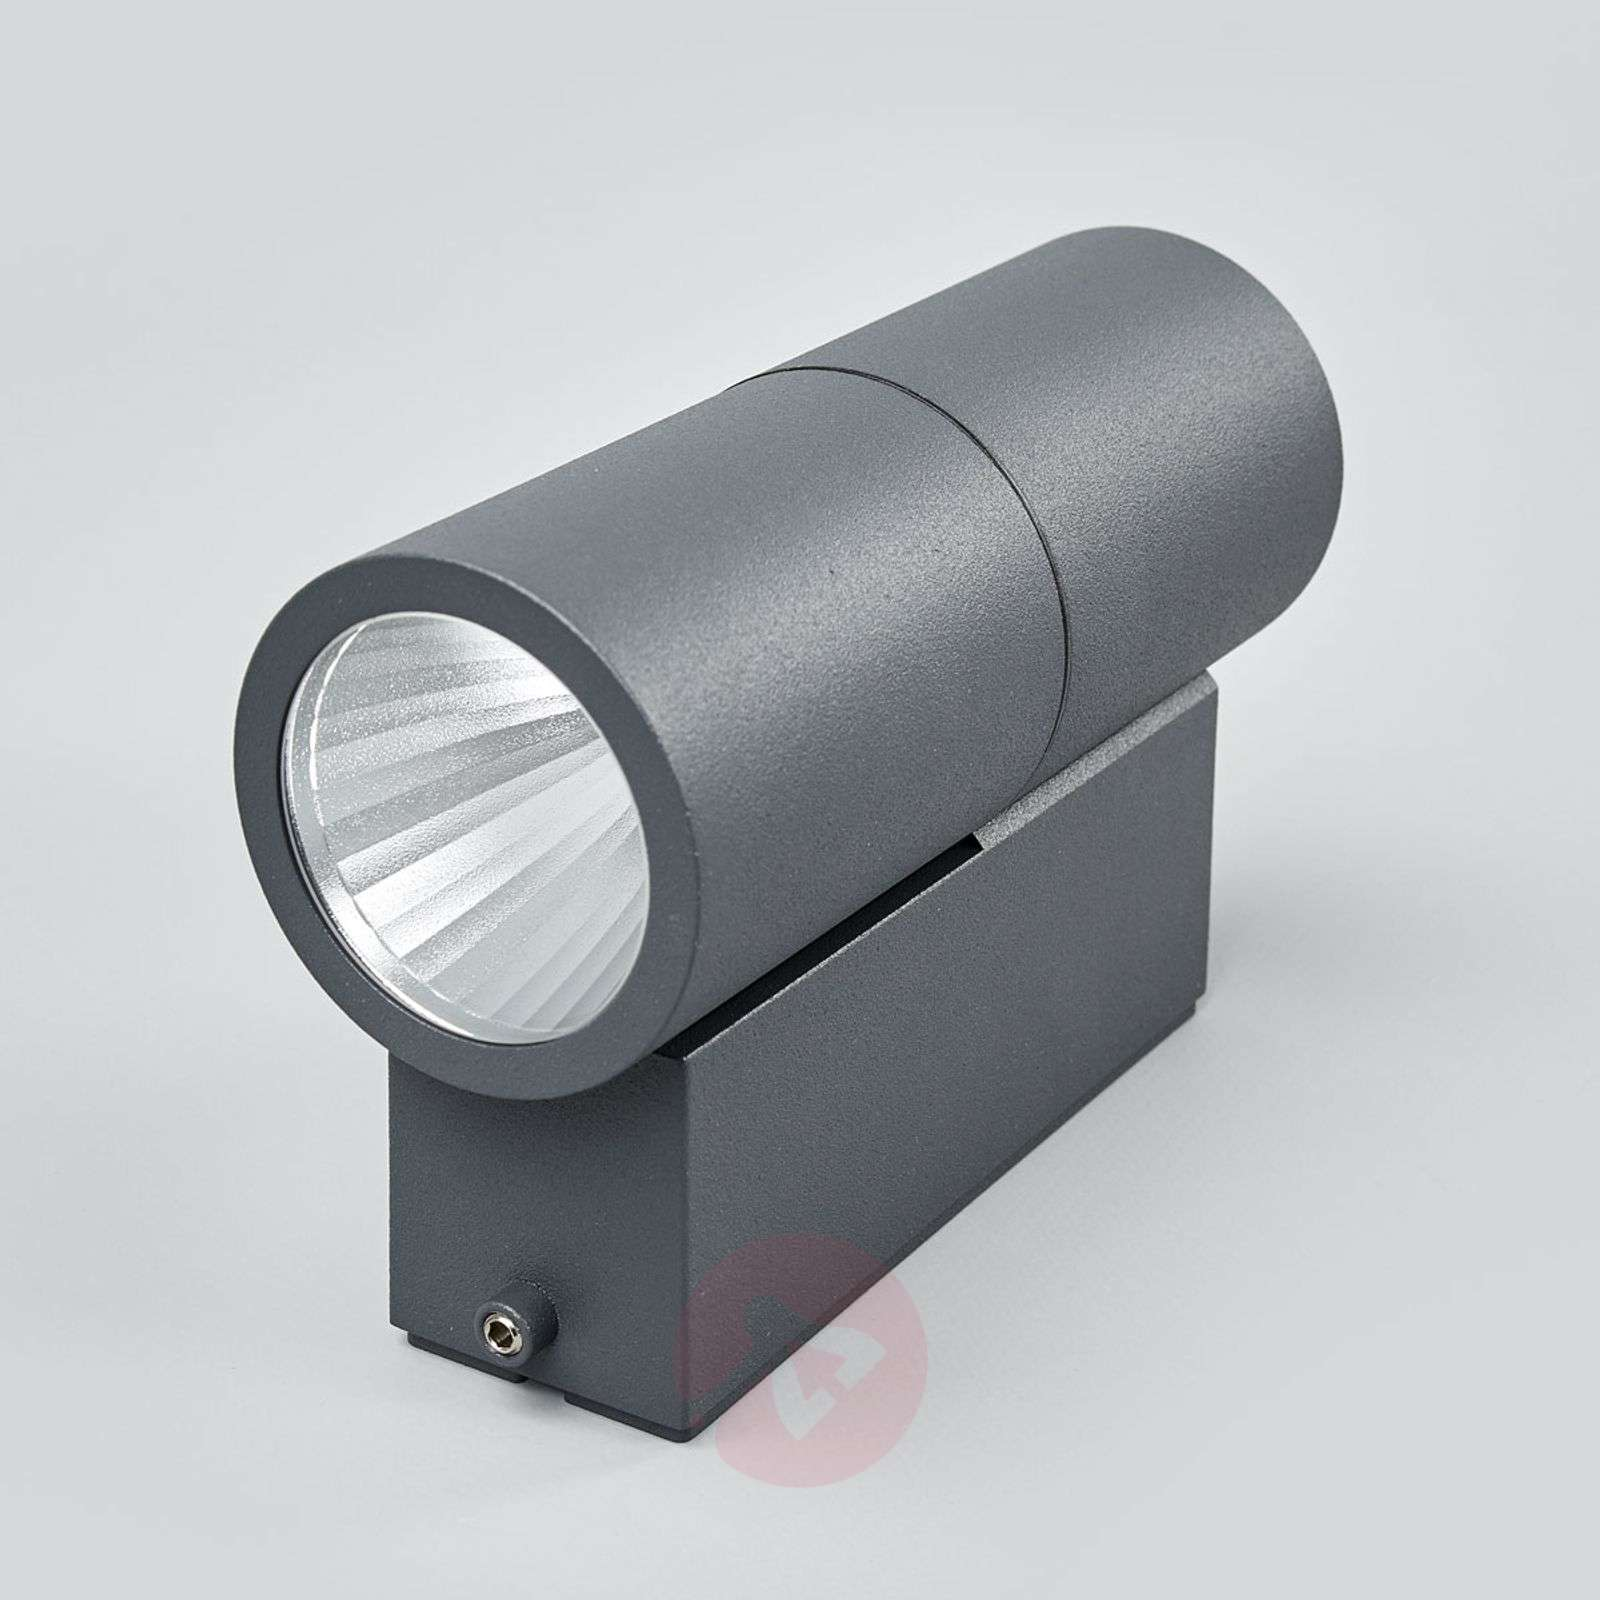 Bega LED outdoor wall lamp Andy one-sided-1566024-01